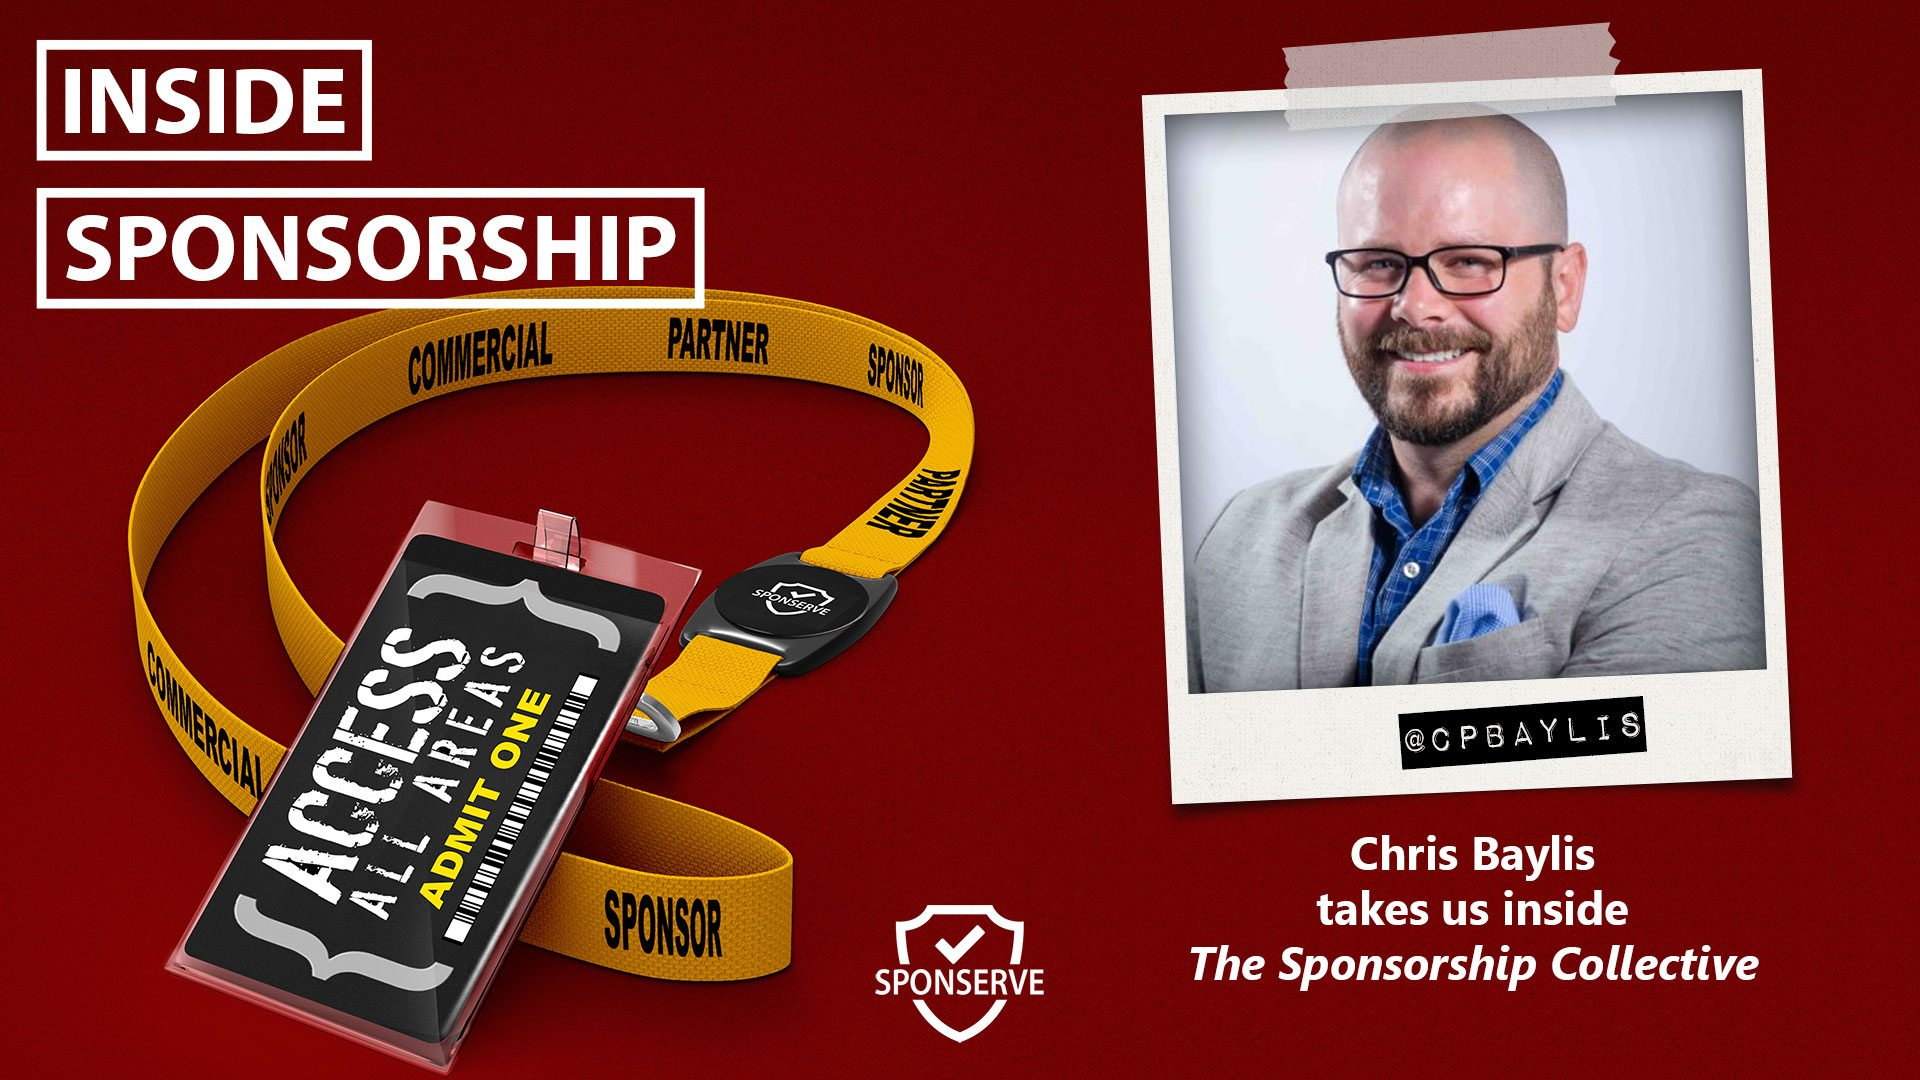 inside sponsorship chris baylis the sponsorship collective